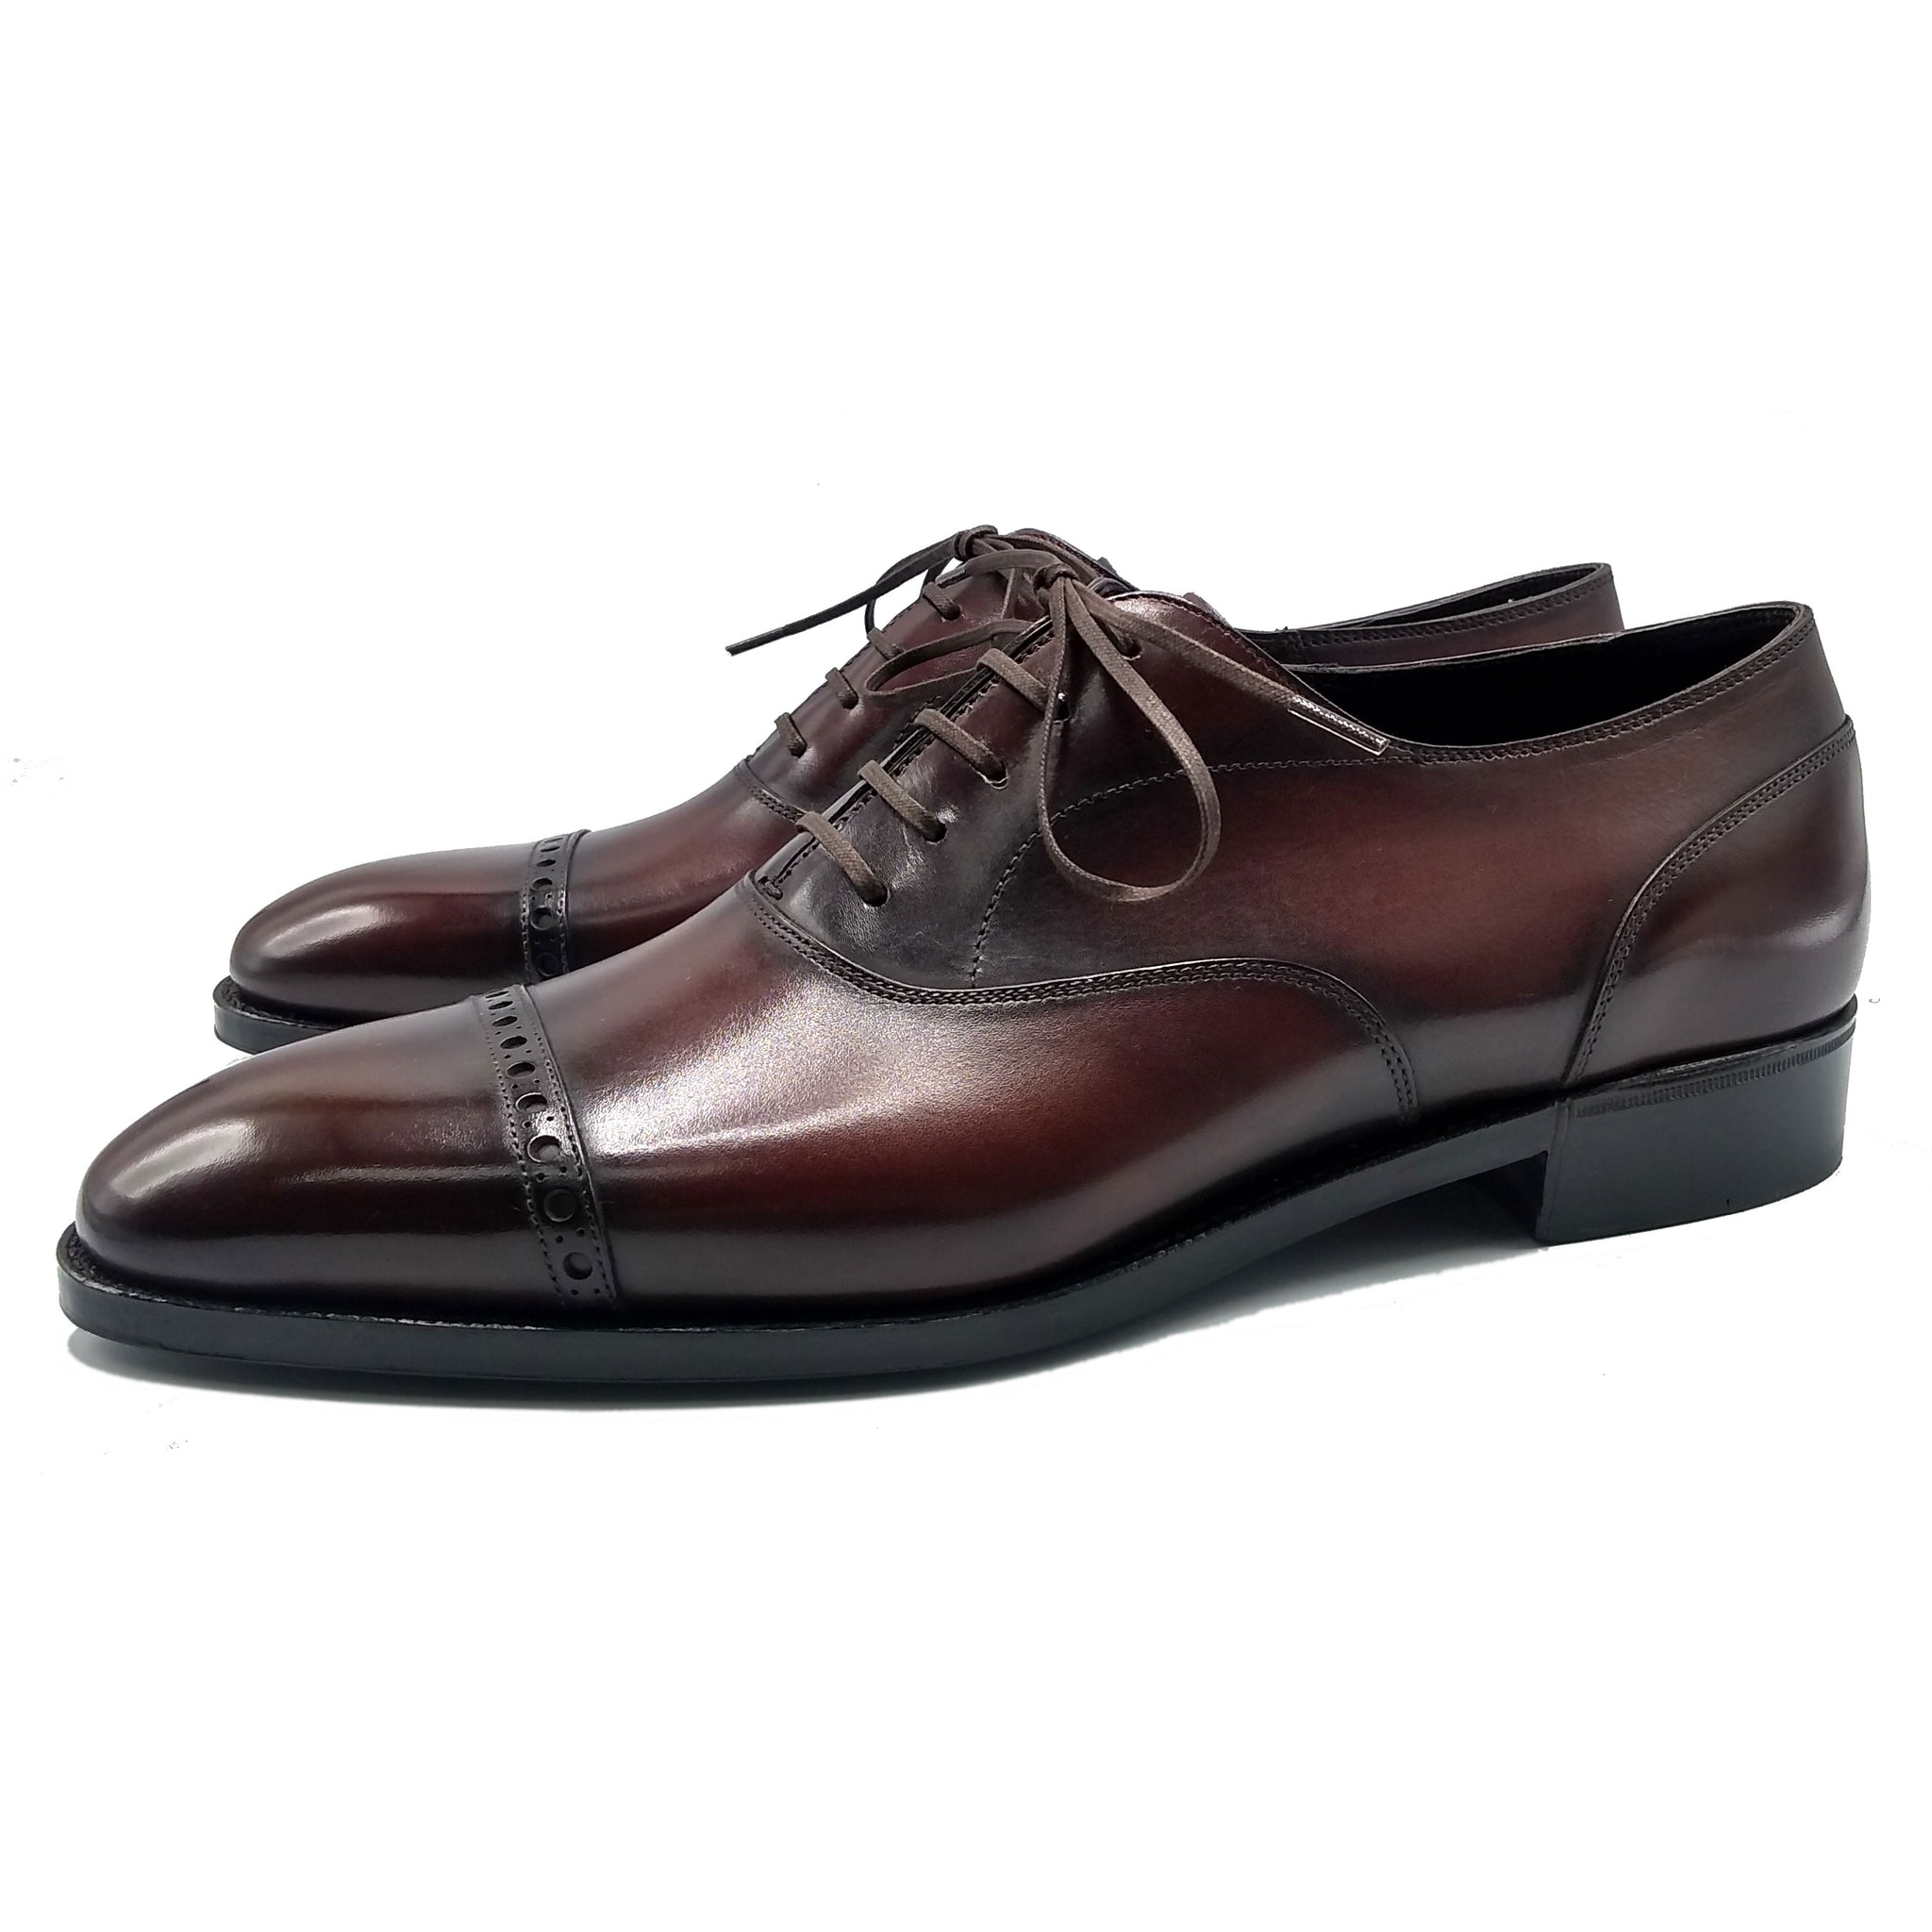 The Oxford Refined